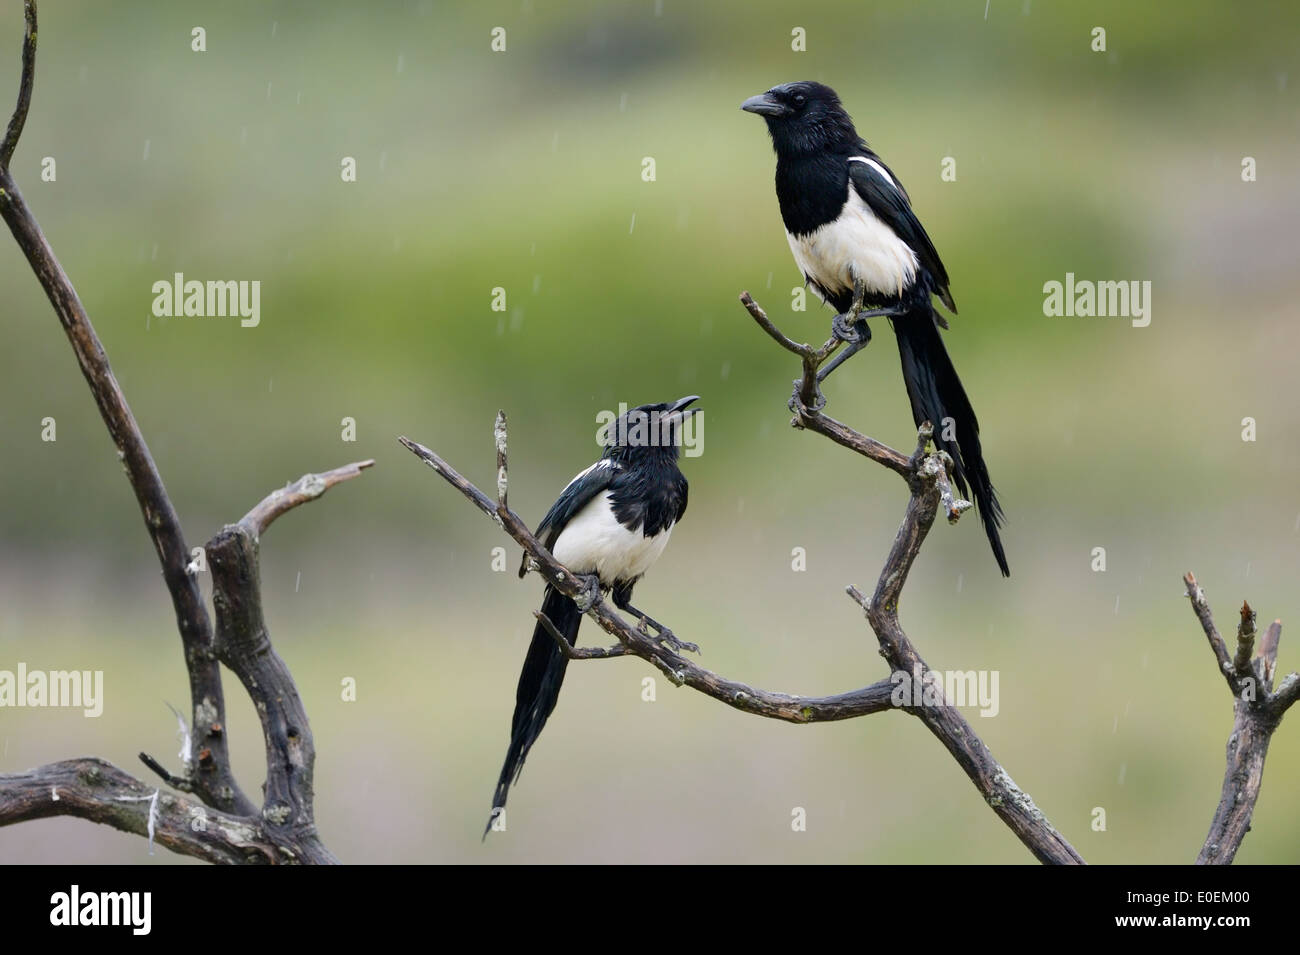 Two magpies (Pica pica) quarreling in a tree. - Stock Image